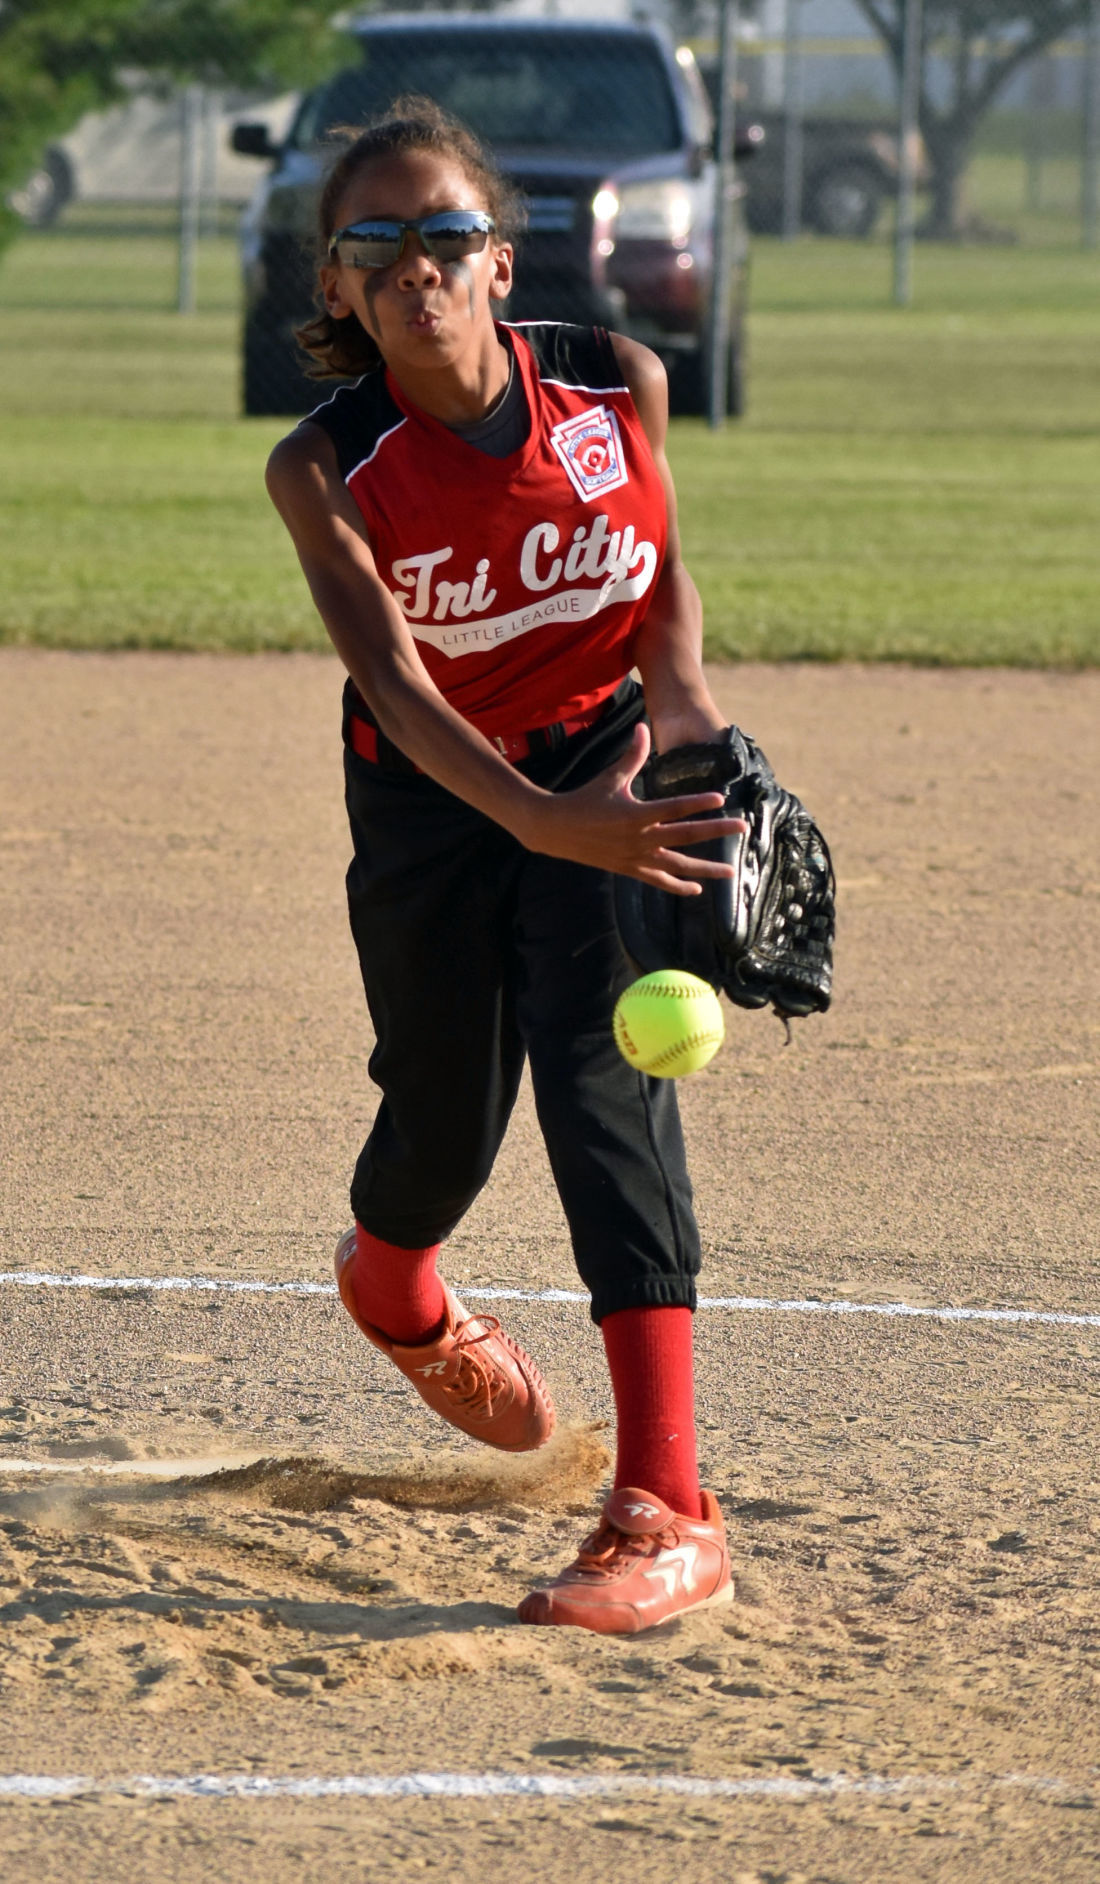 Little League 8-10 Softball State Playoffs: North East vs. Tri-City, July 16, 2019